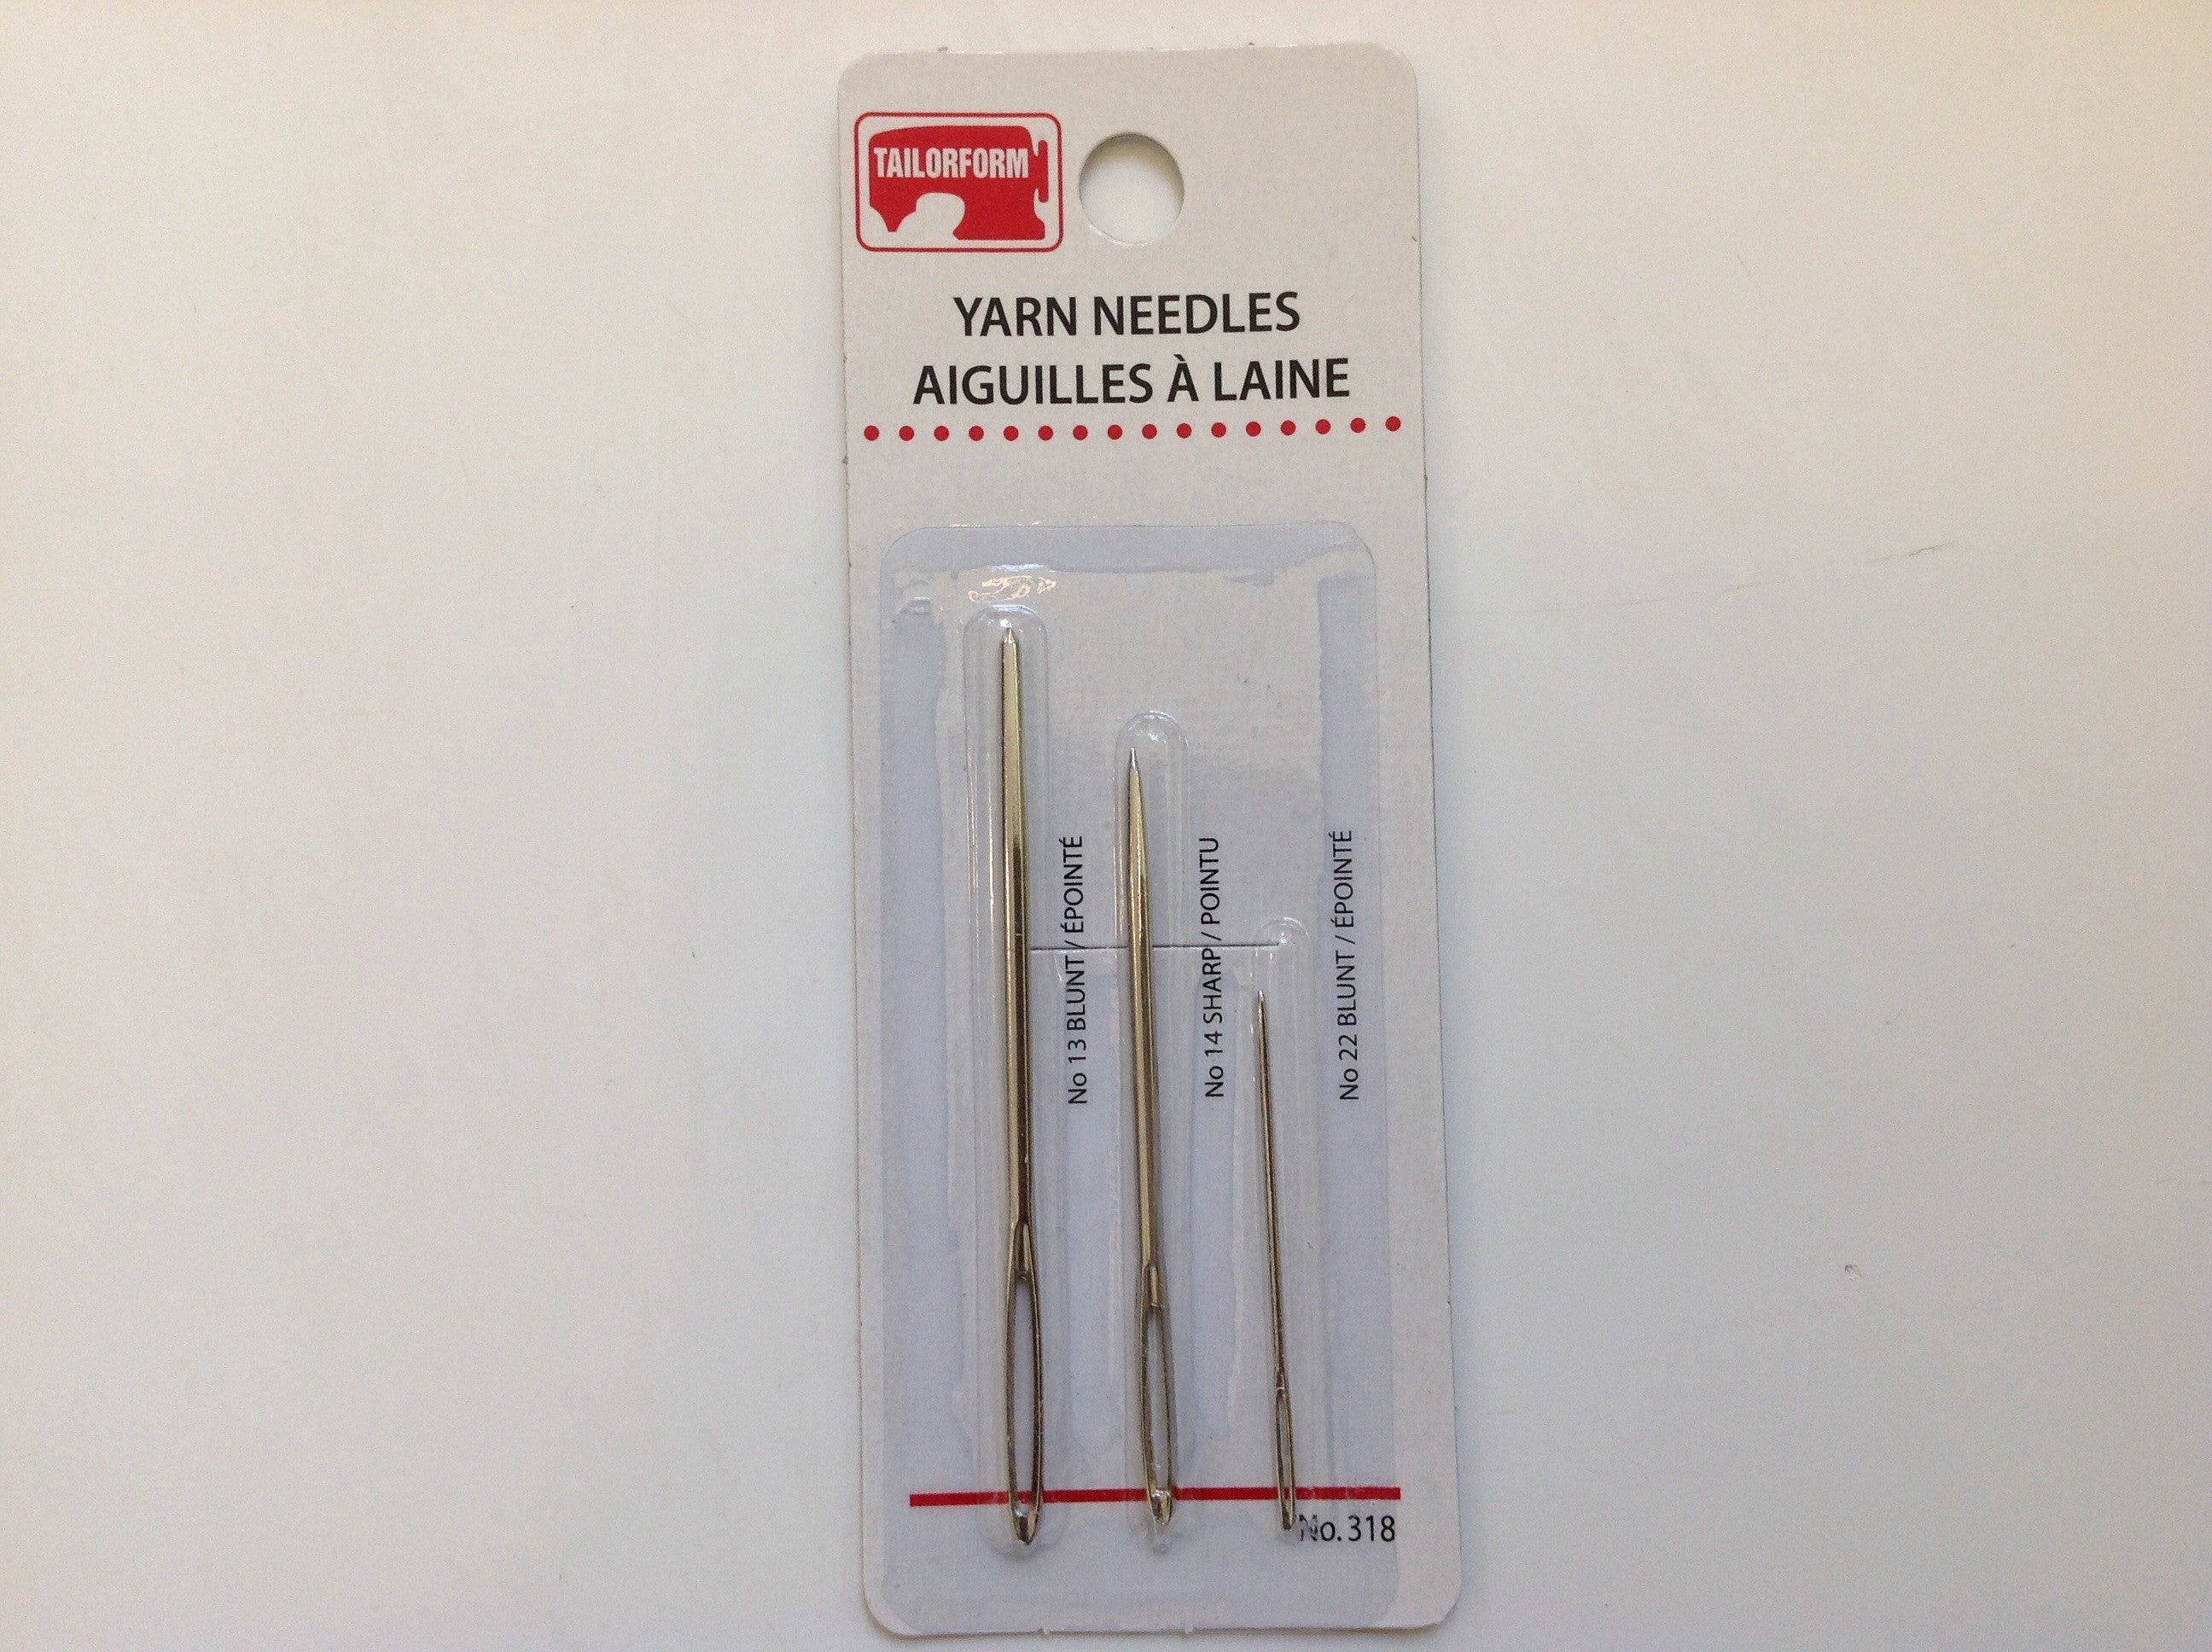 Yarn Needles, Taylorform